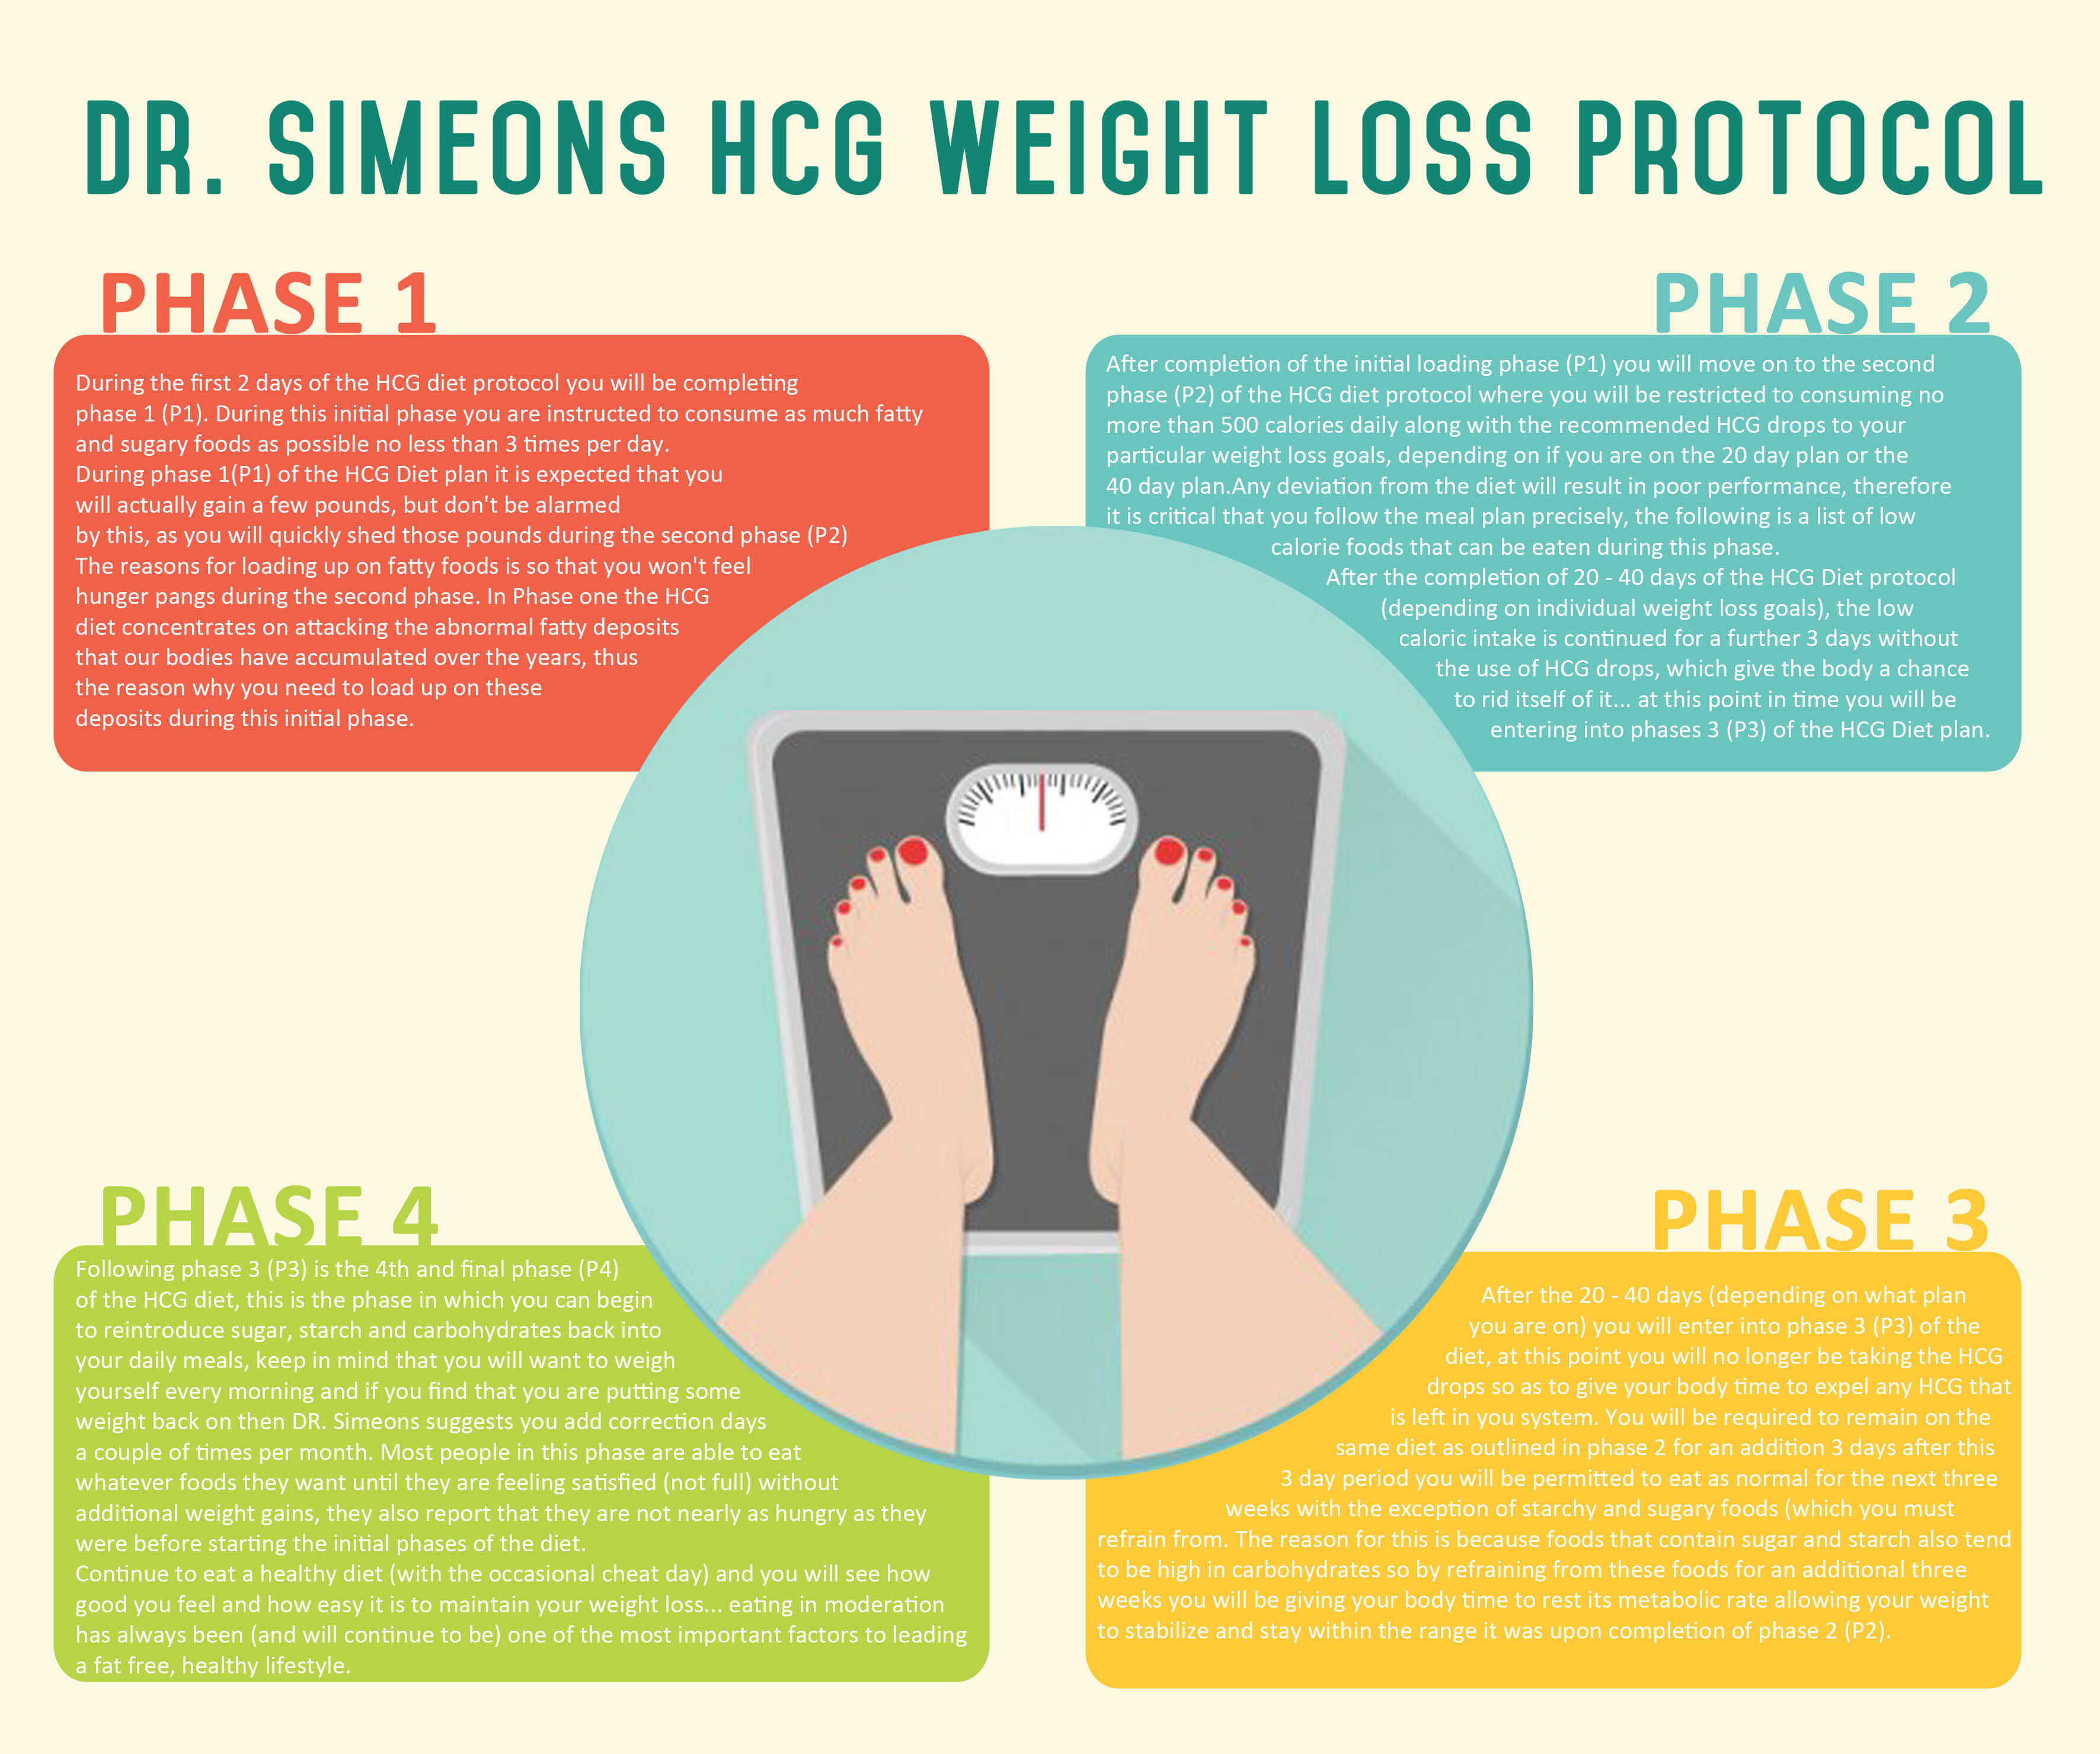 DrSimeonsHCGWeightLossProtocolinfographic